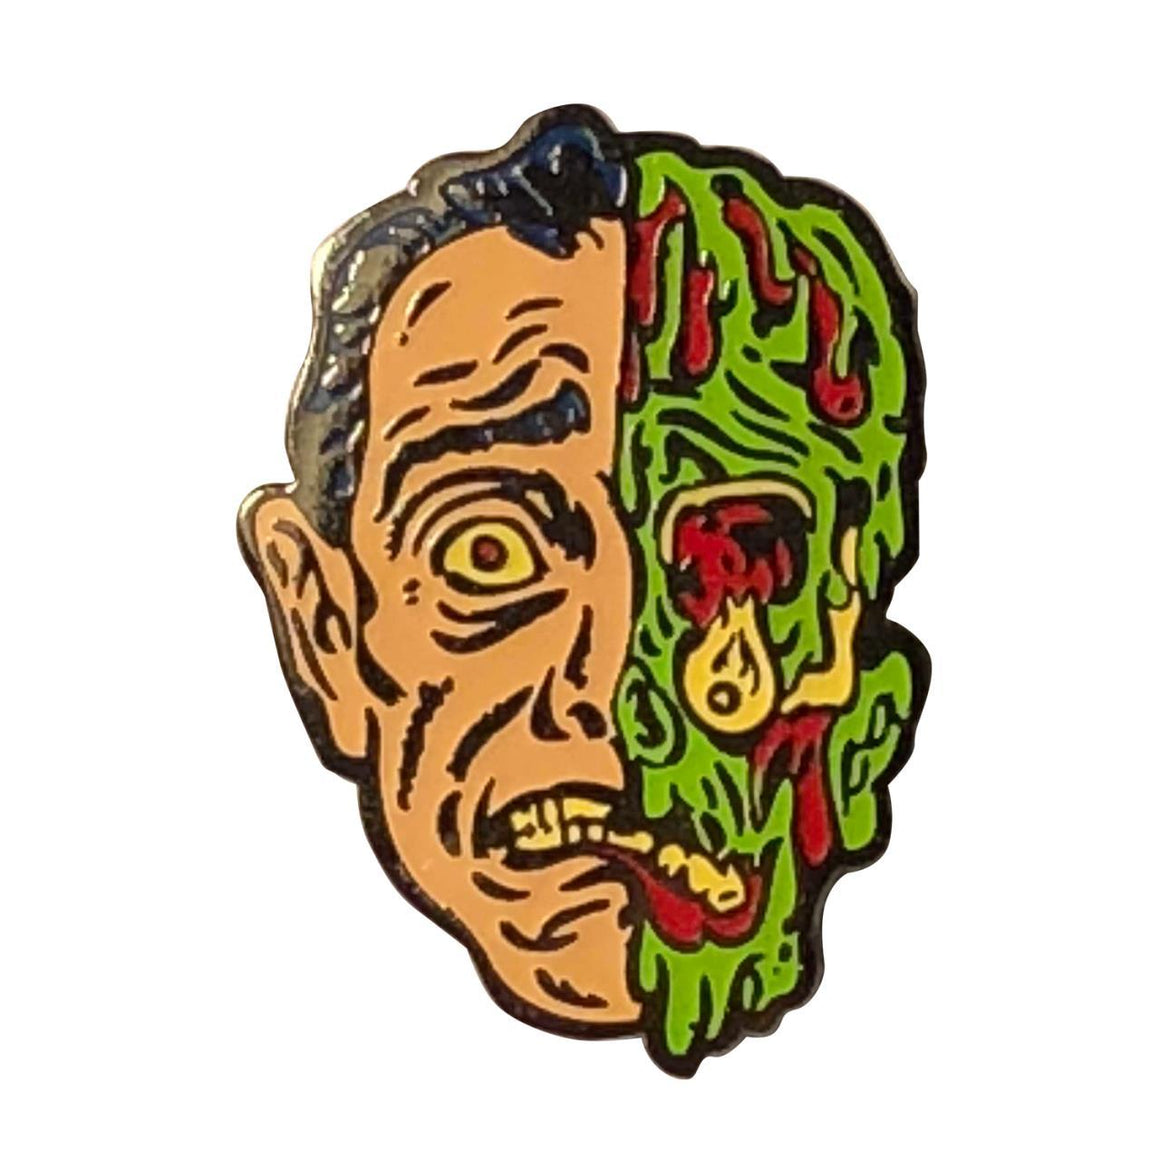 Melted Man Enamel Pin